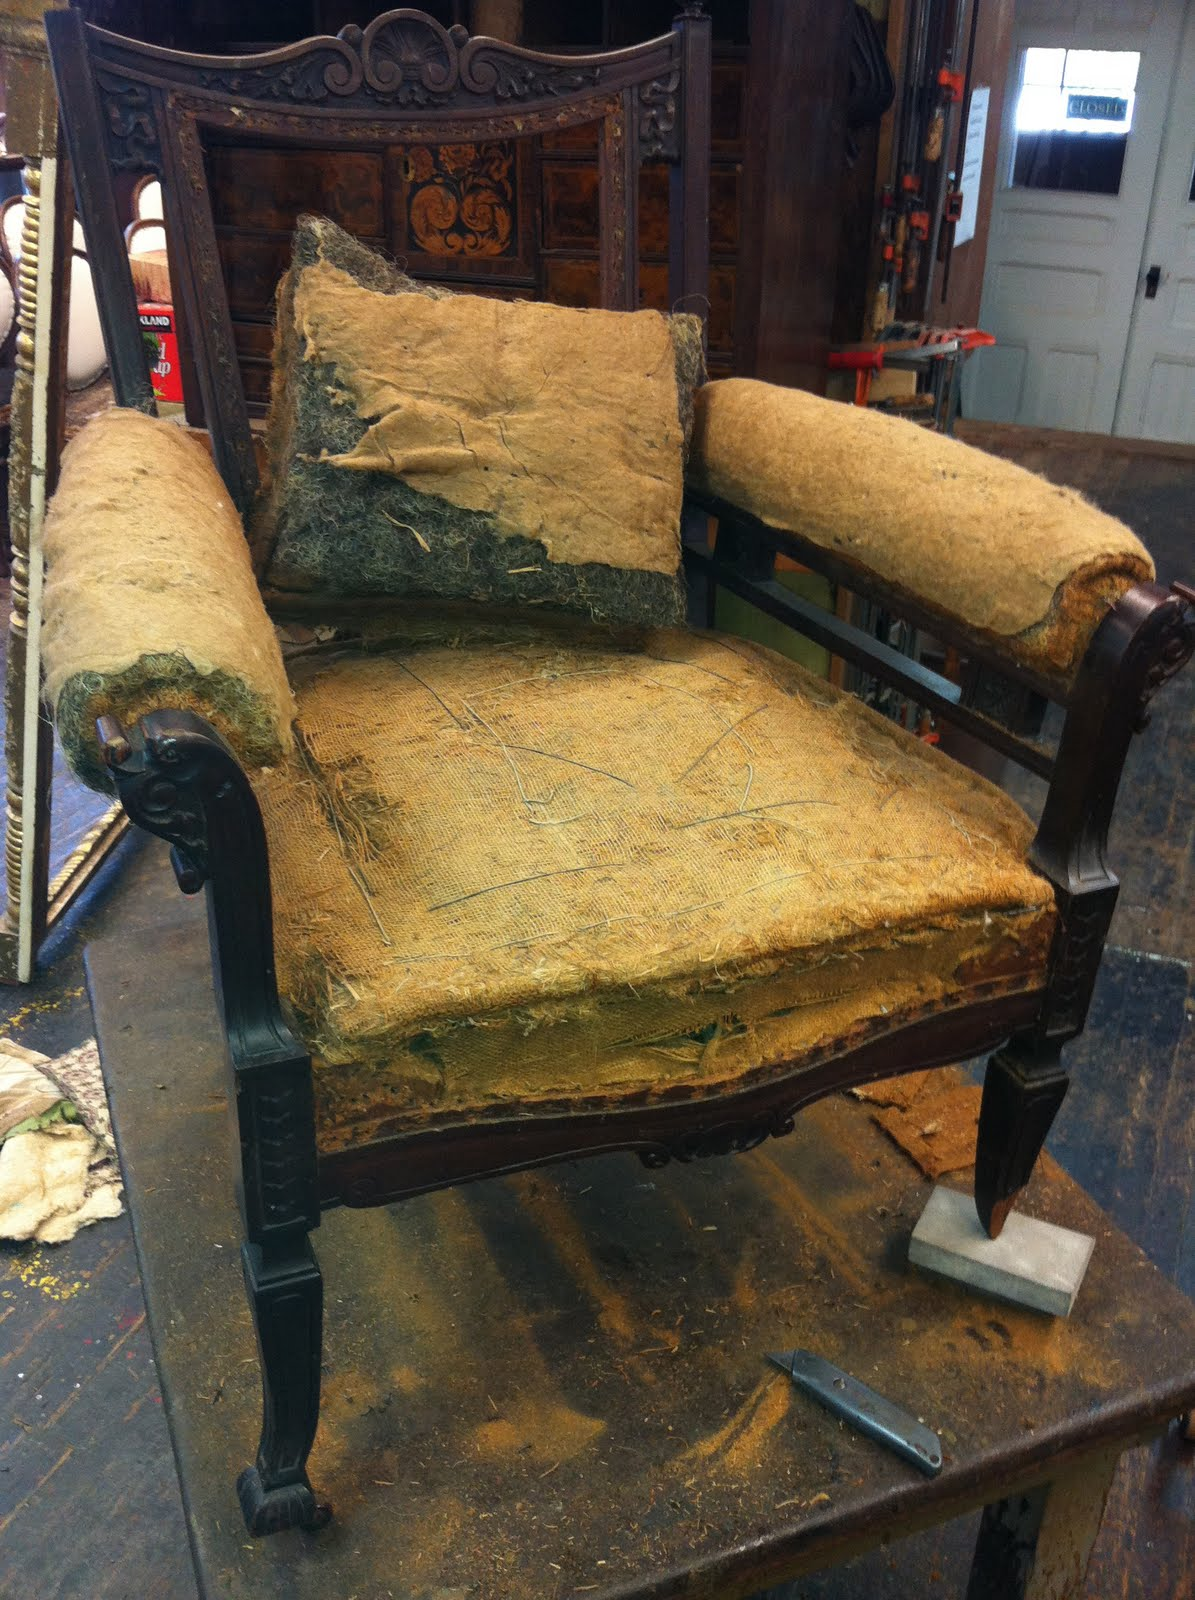 Typical Upholstery Project